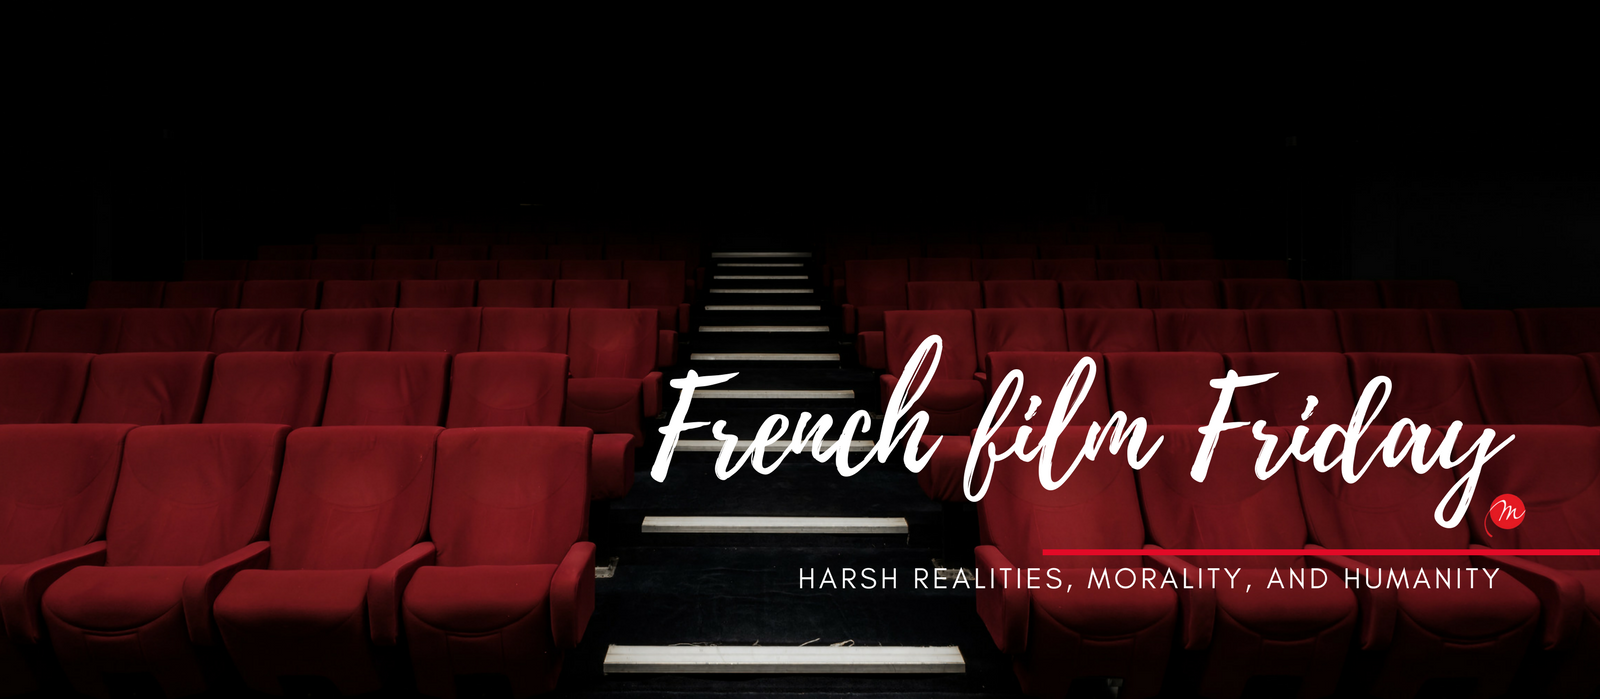 MyFrenchLife™ – MyFrenchLife.org – French film Friday: harsh realities – emotional reactions in French cinema